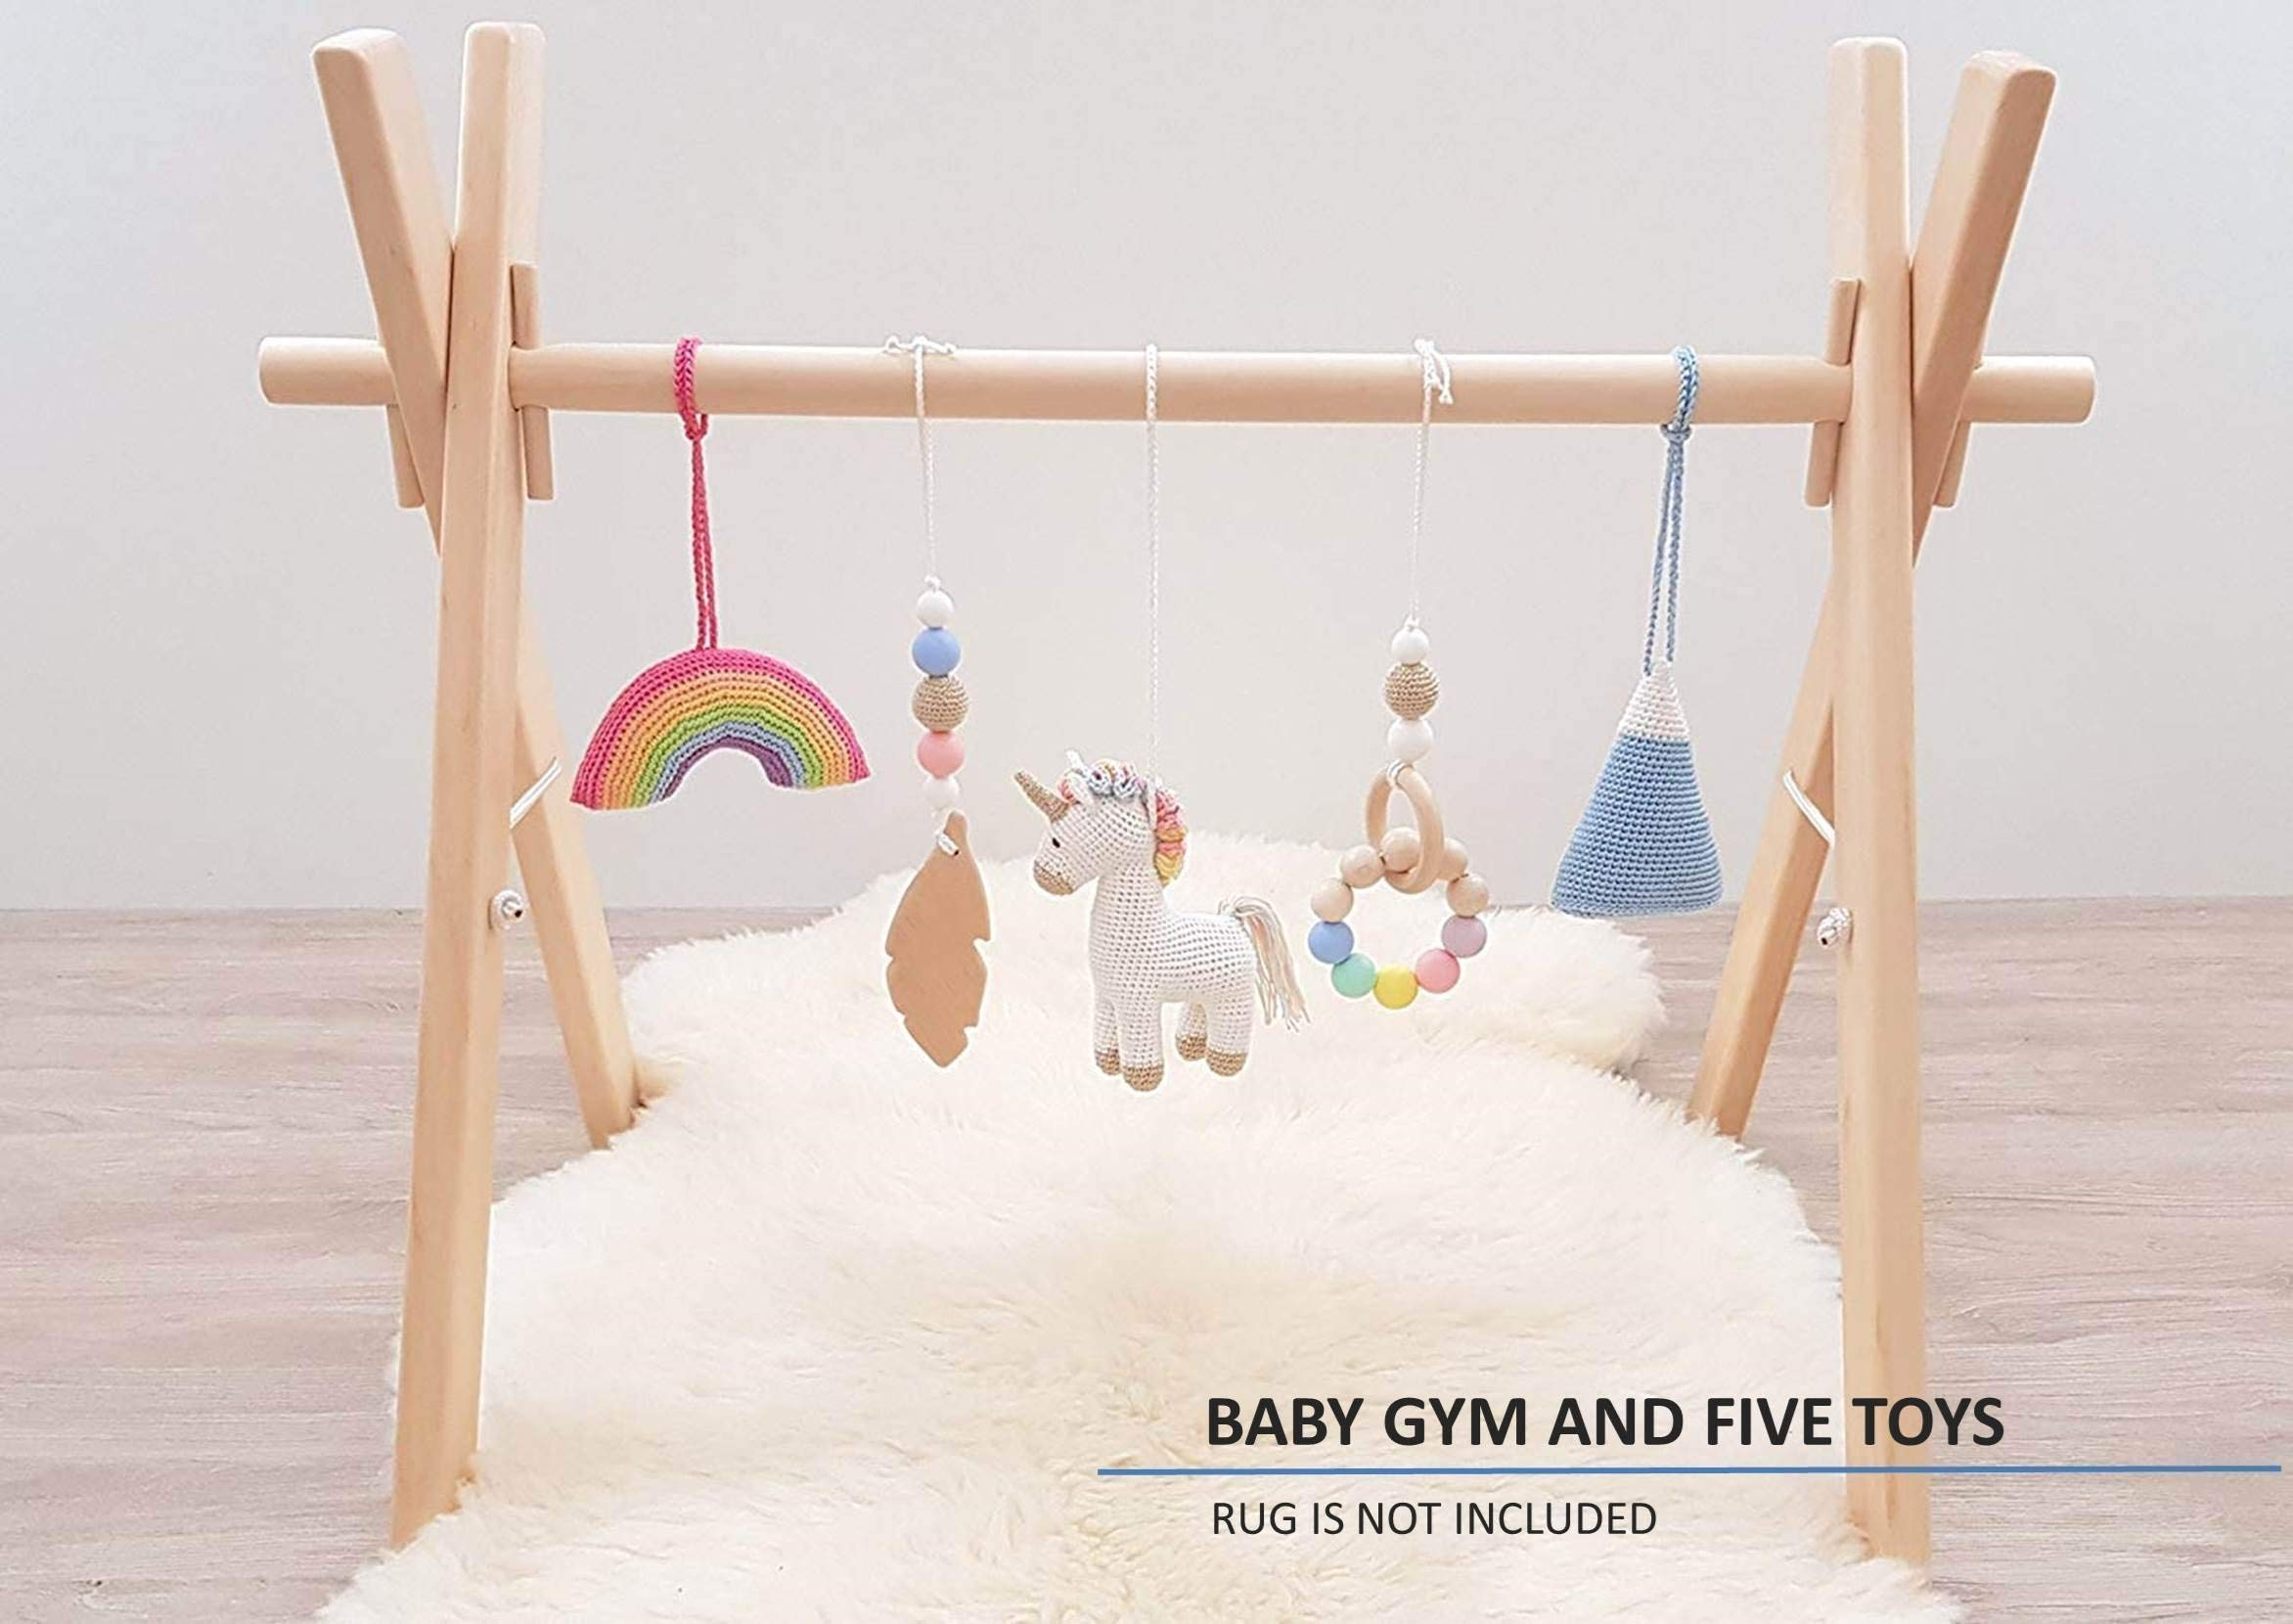 Rainbow Unicorn Baby Play Gym with 5 Mobiles: Unicorn, Rainbow, Mountain, Feather, Beaded Ring. Handmade by… 3